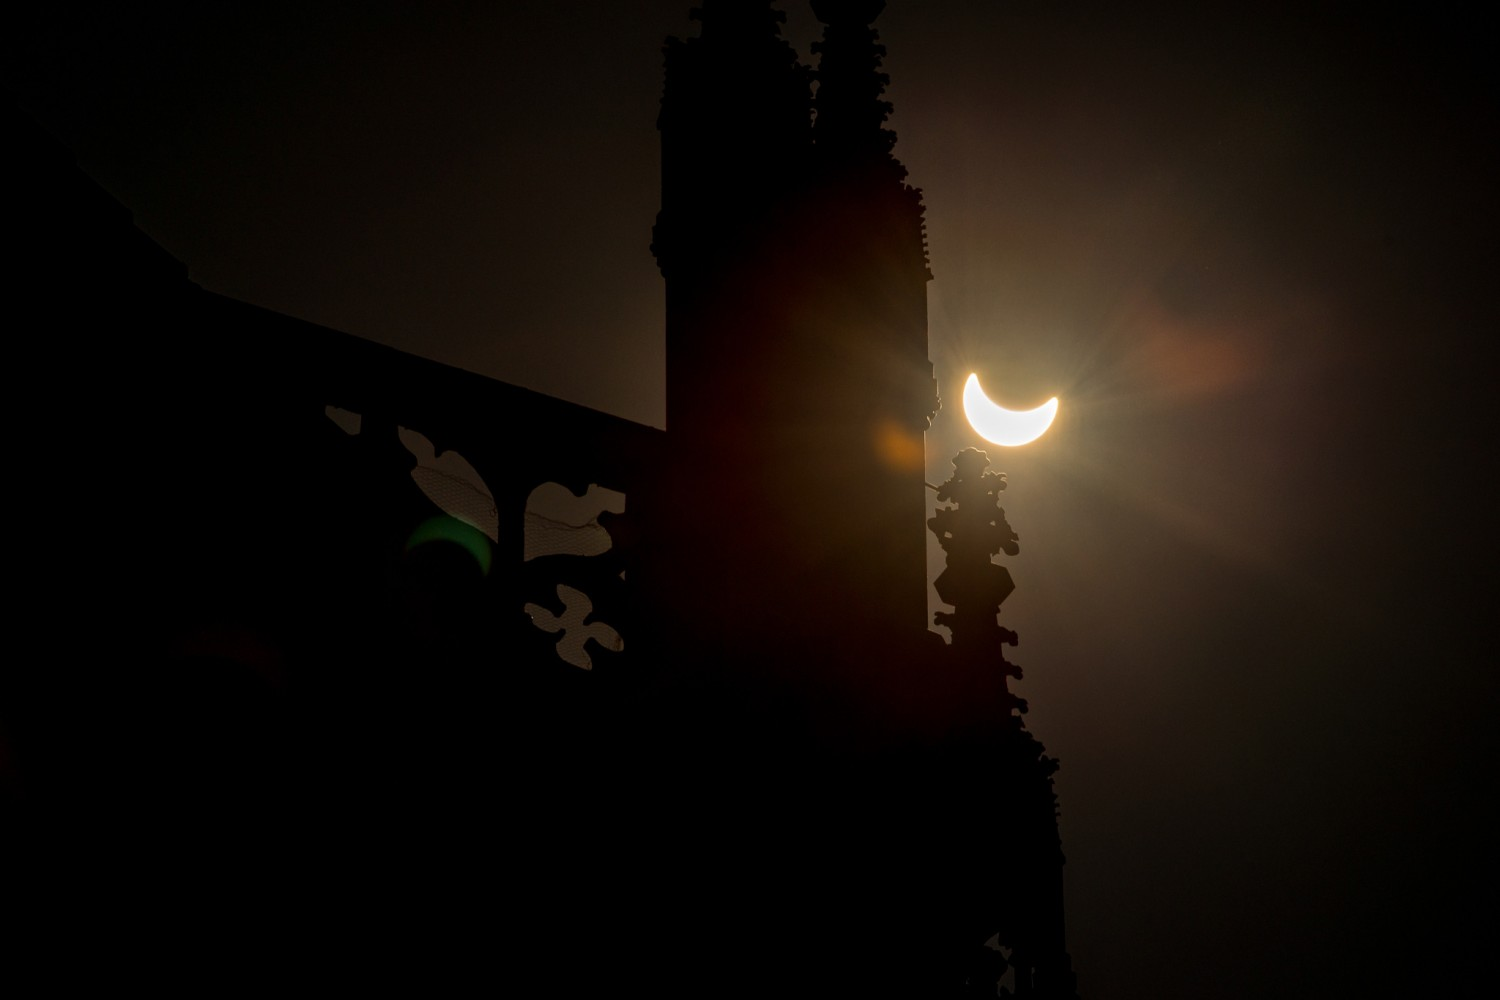 50 Photos of the March 20th Solar Eclipse Taken by 500px Users Around the World